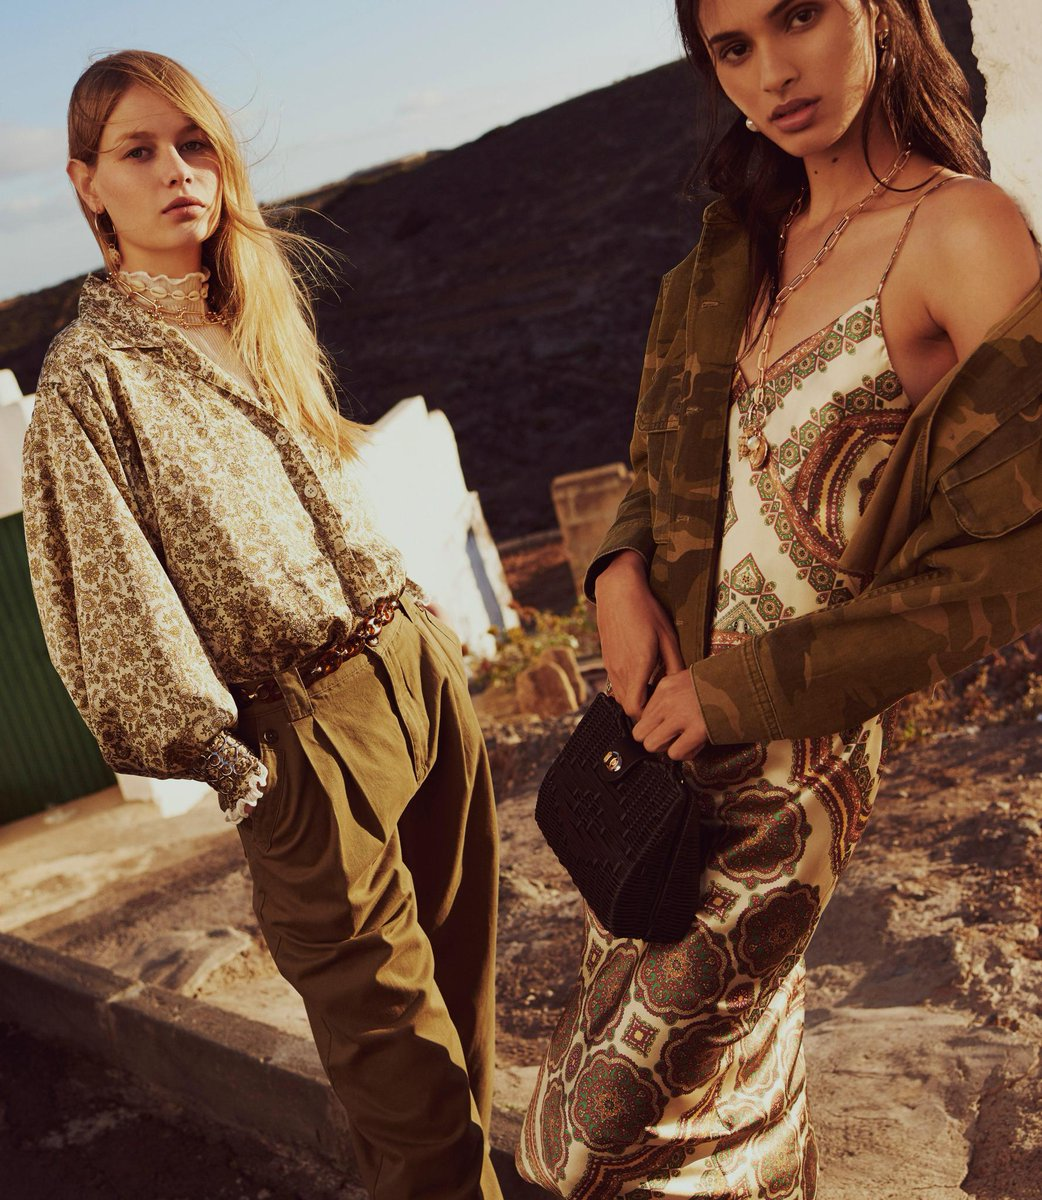 Khaki hues make for perfect golden hour dressing ✨ https://t.co/U5RpJaEBok